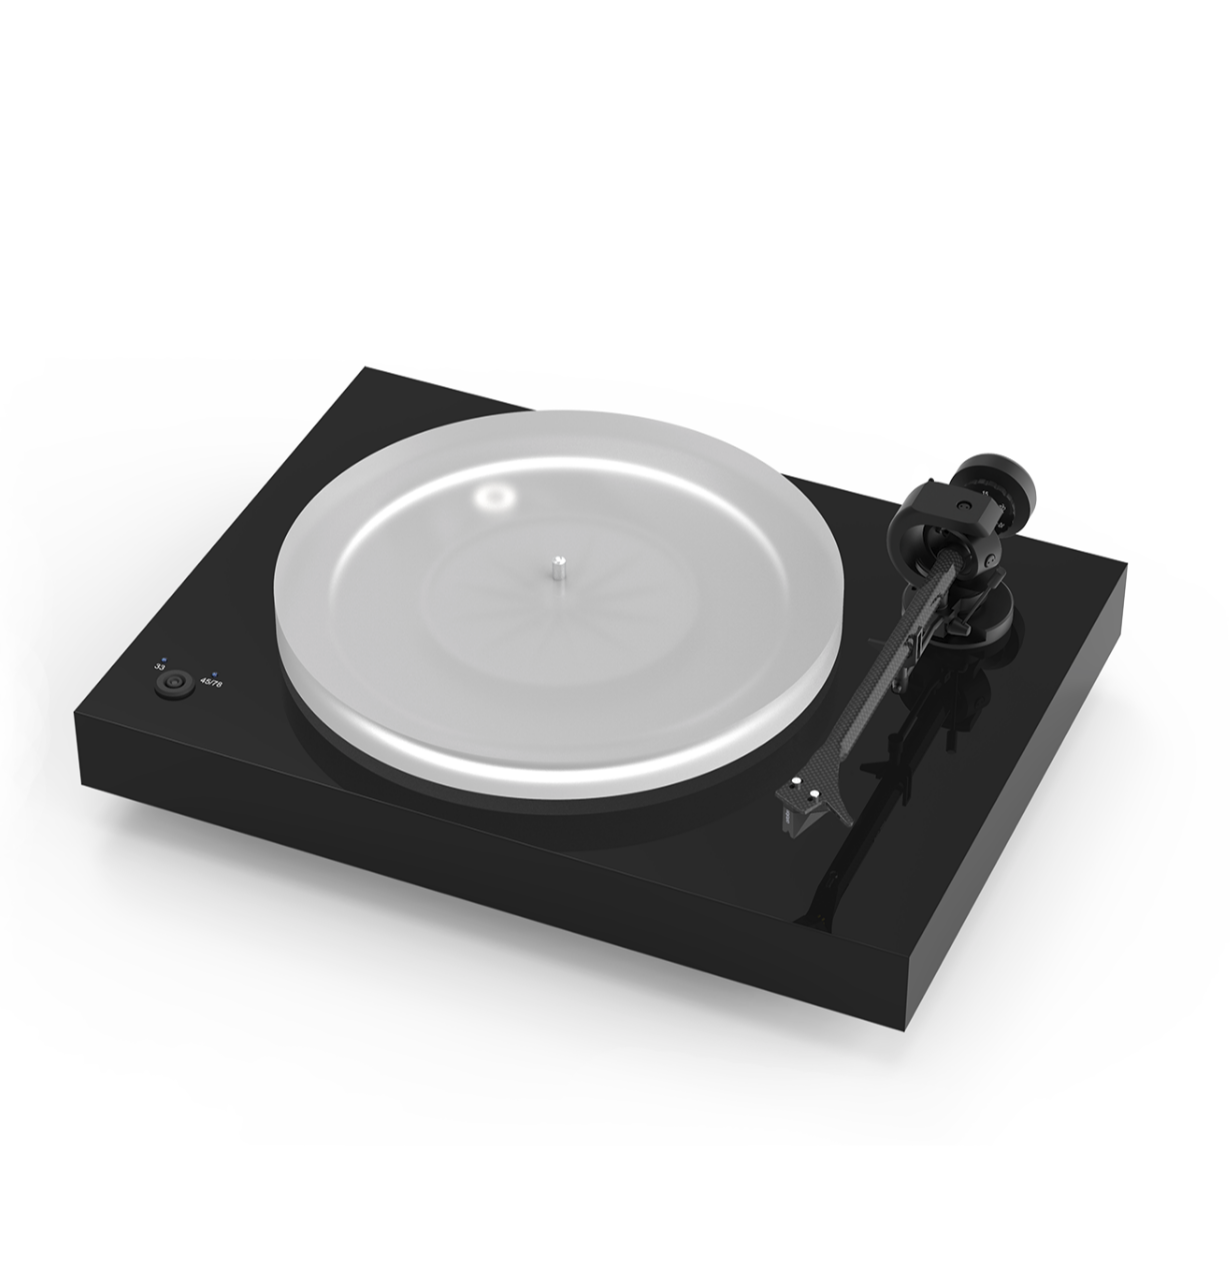 Toca-Discos Pro-Ject X2 Pick it 2M-Silver Made In Europa